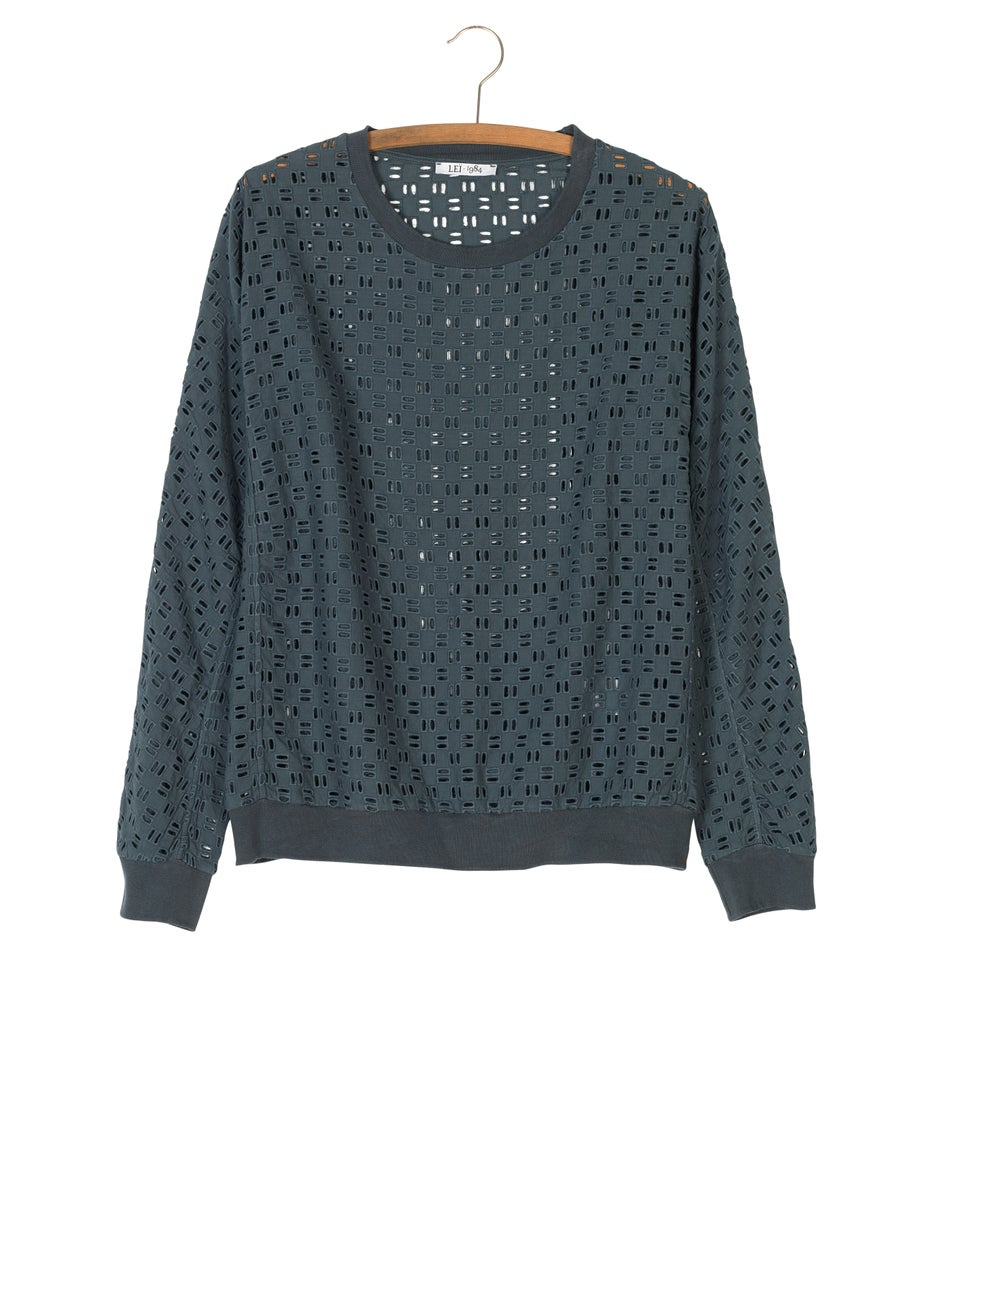 Image of Sweat broderie anglaise GLORIA 130€ - 60%